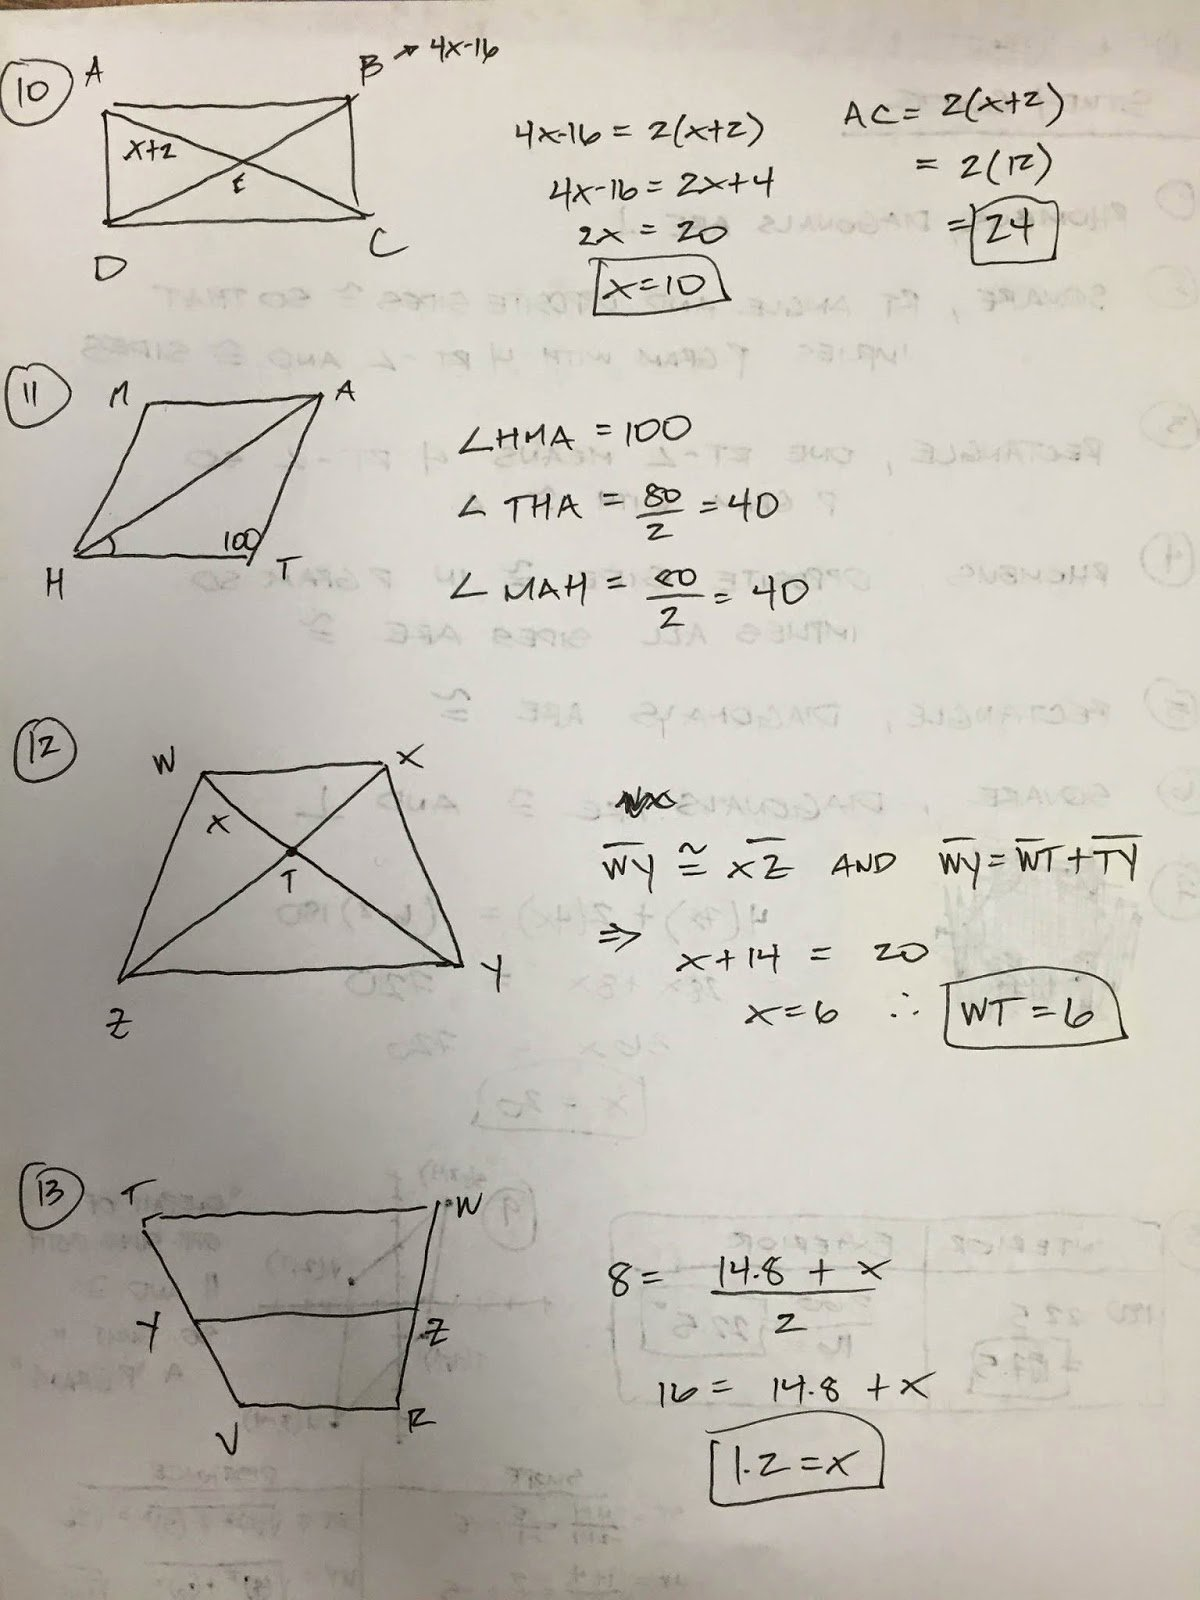 6.3 Biodiversity Worksheet Answers Inspirational Honors Geometry Vintage High School Chapter 6